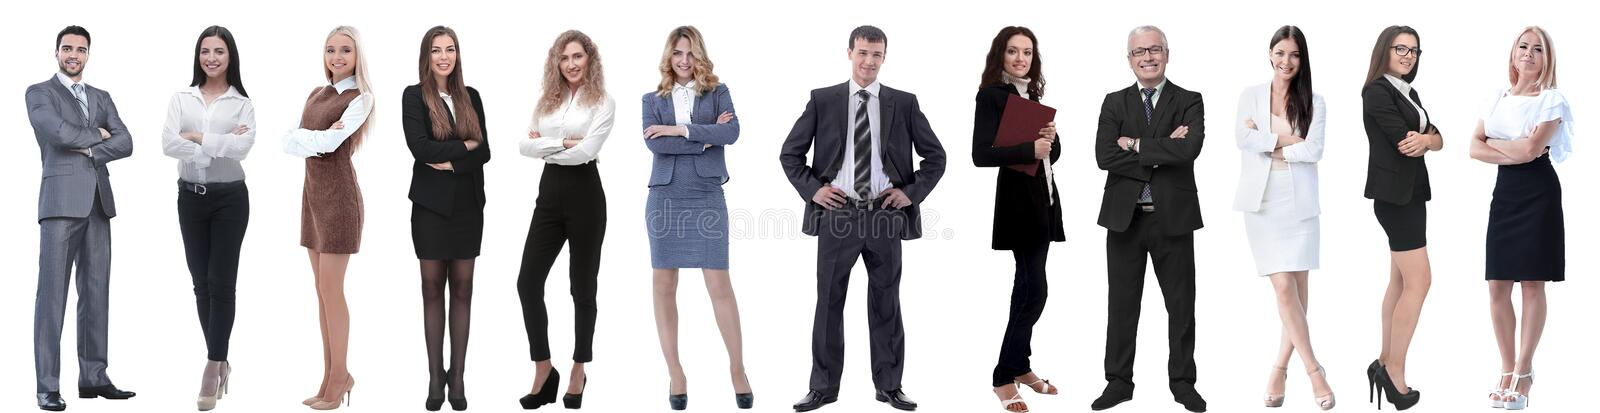 Group of successful business people isolated on white royalty free stock photography